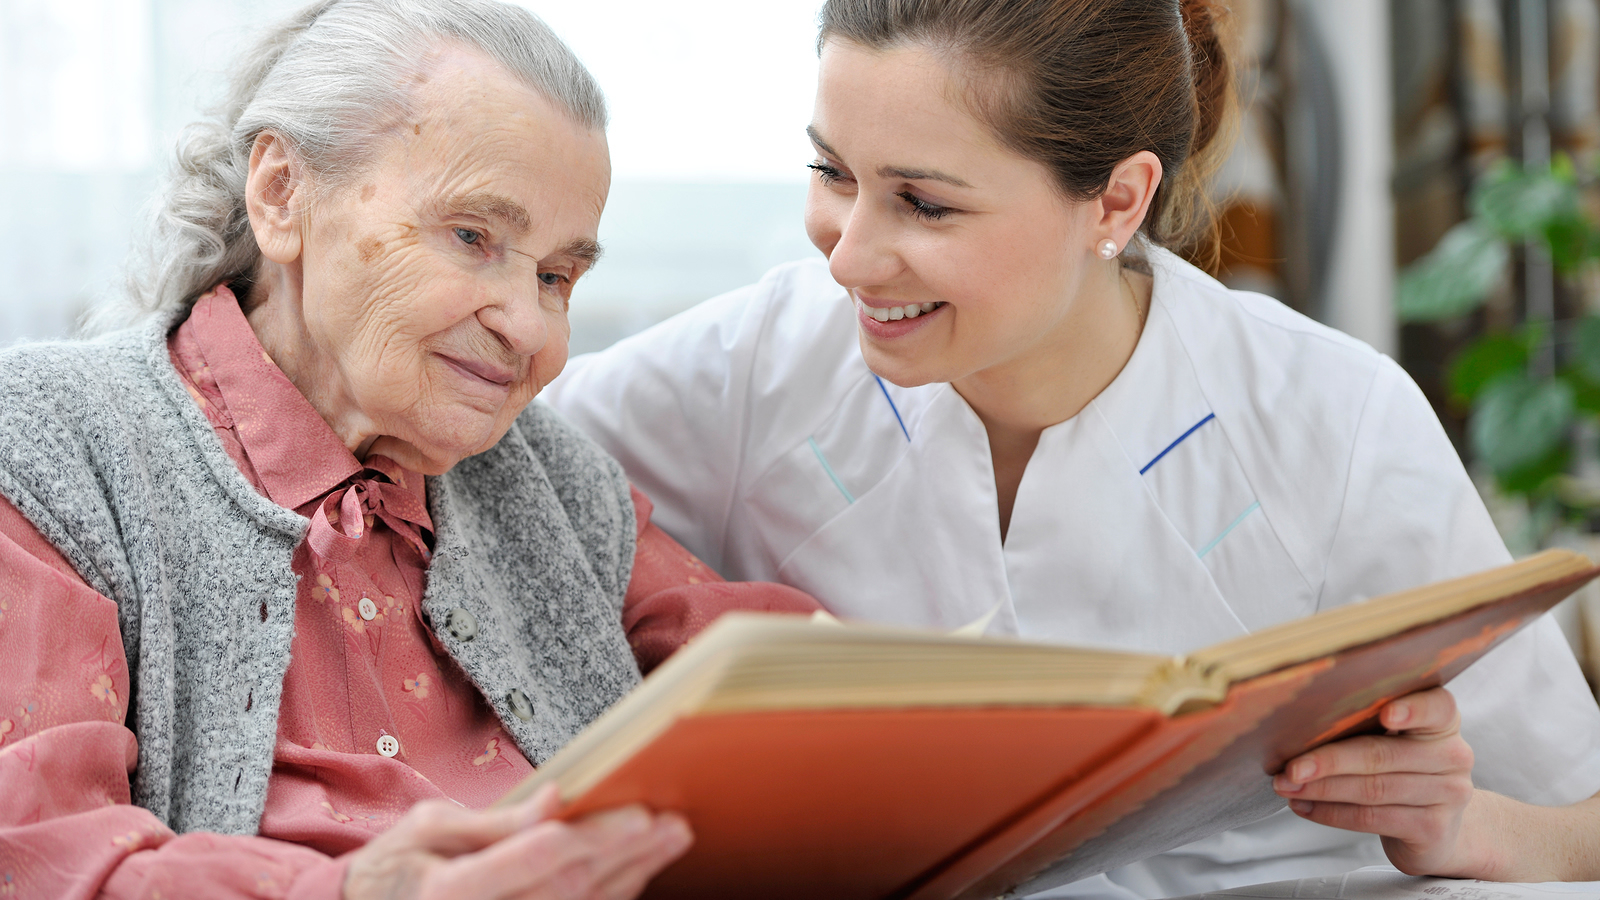 <h4>Needed Work</h4><p>Why do we reward people for outsourcing care of their loved ones to strangers and penalize them for caring for their kids and parents themselves? We're calling for changes to make it easier to do the needed work of caregiving. </p><em>Pixabay.com</em>